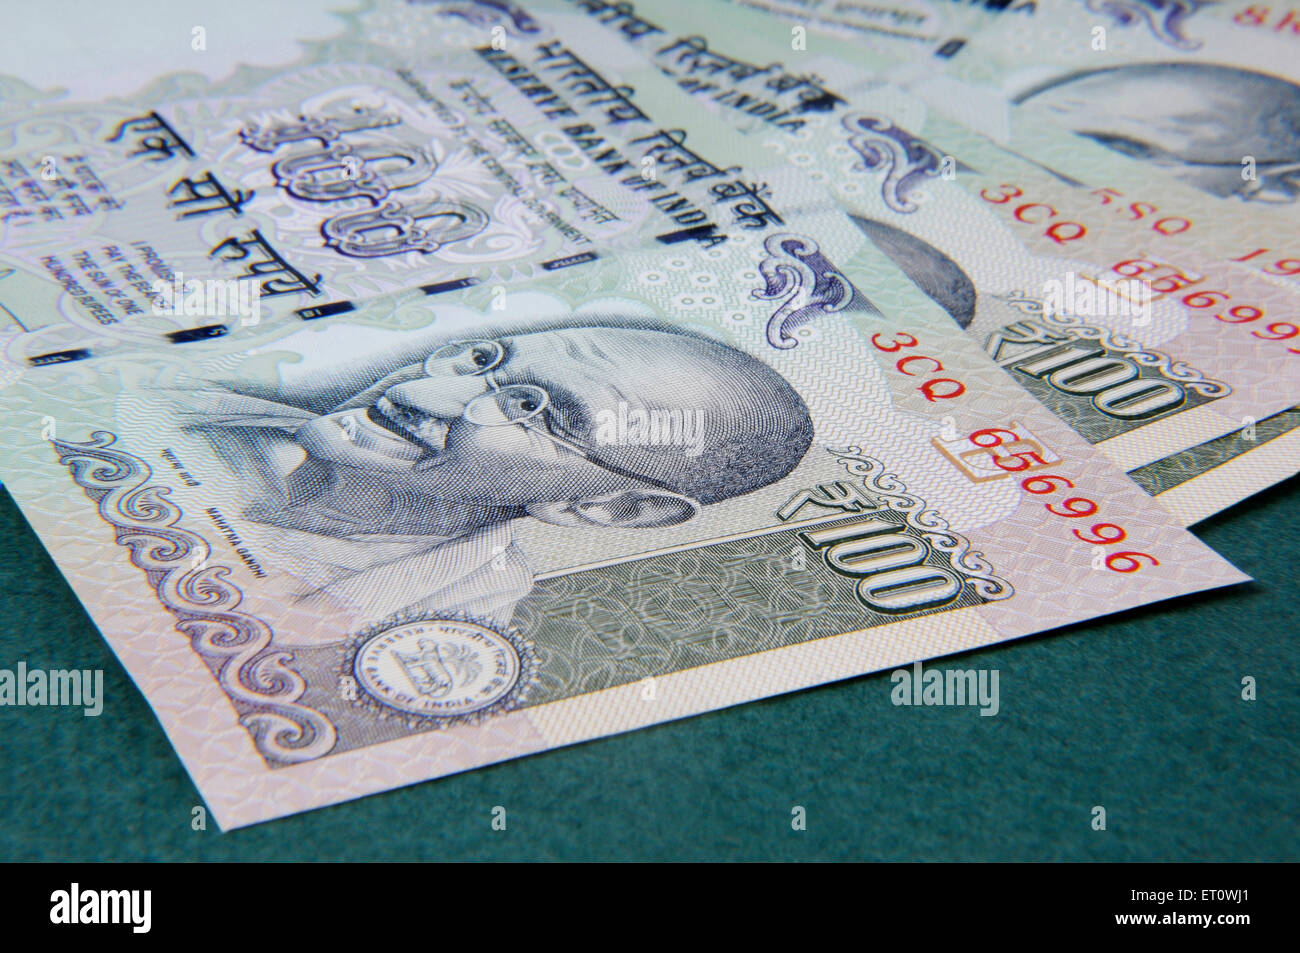 concept of Indian currency one hundred rupee notes - Stock Image